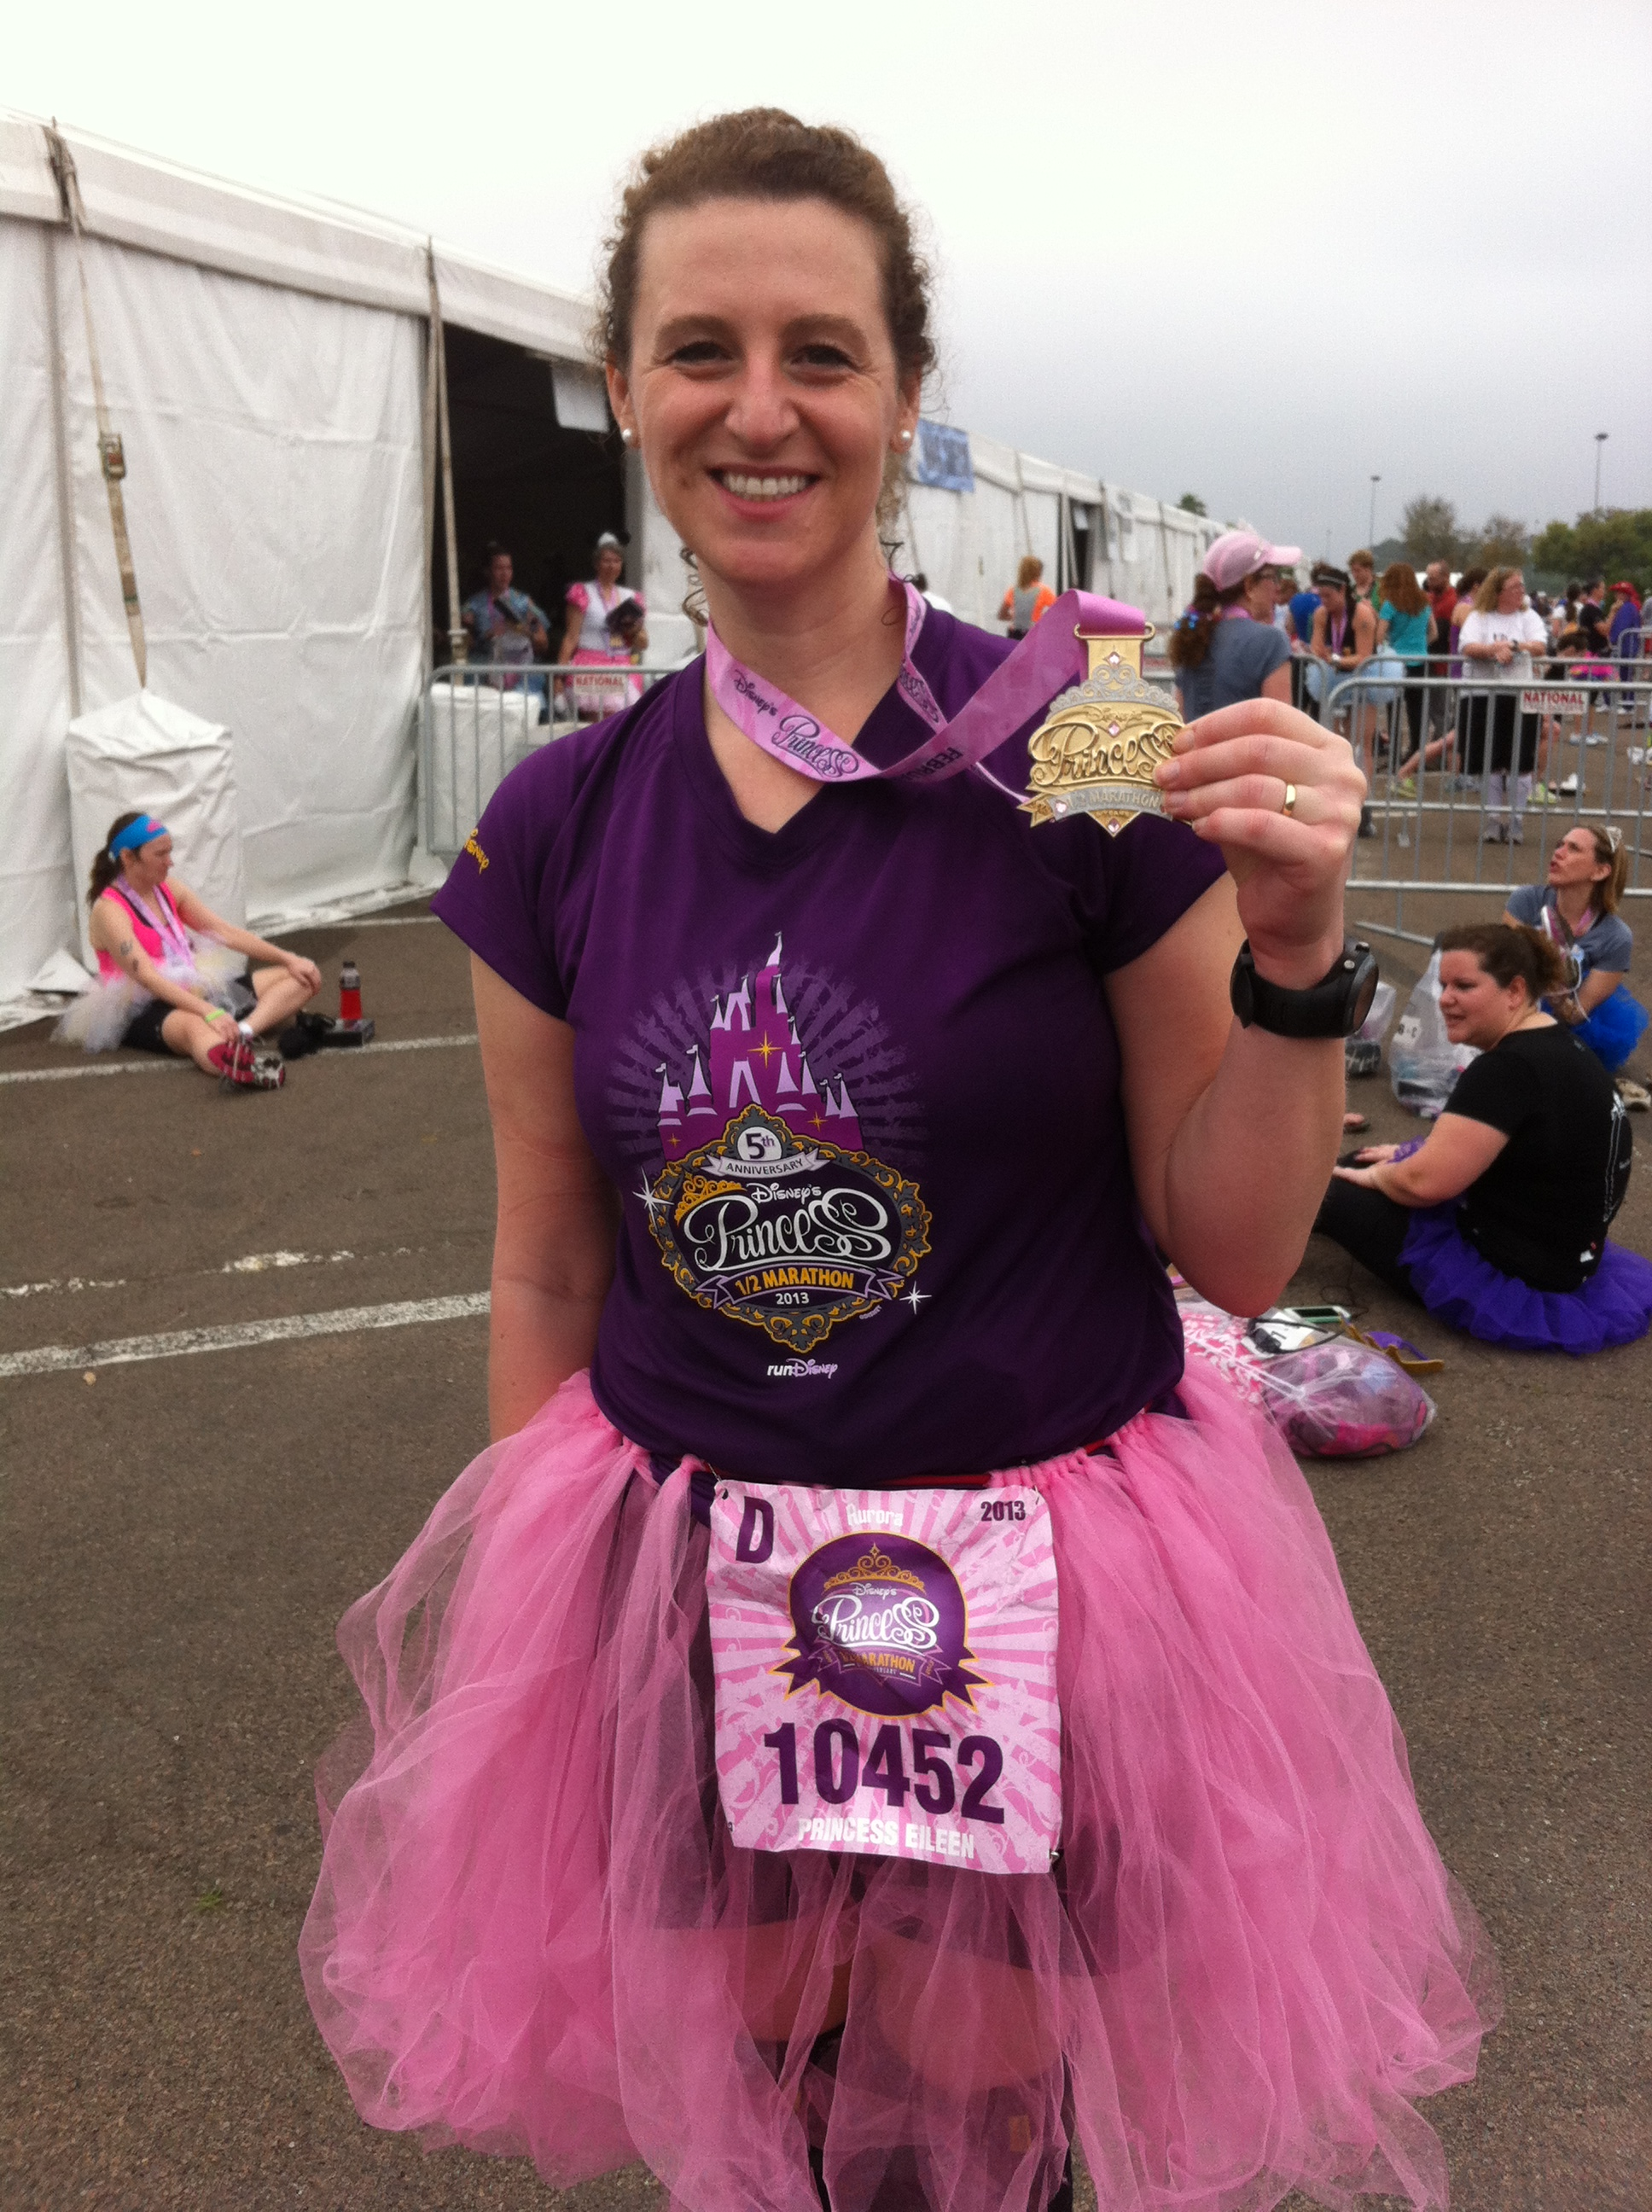 Rundisney Princess Half